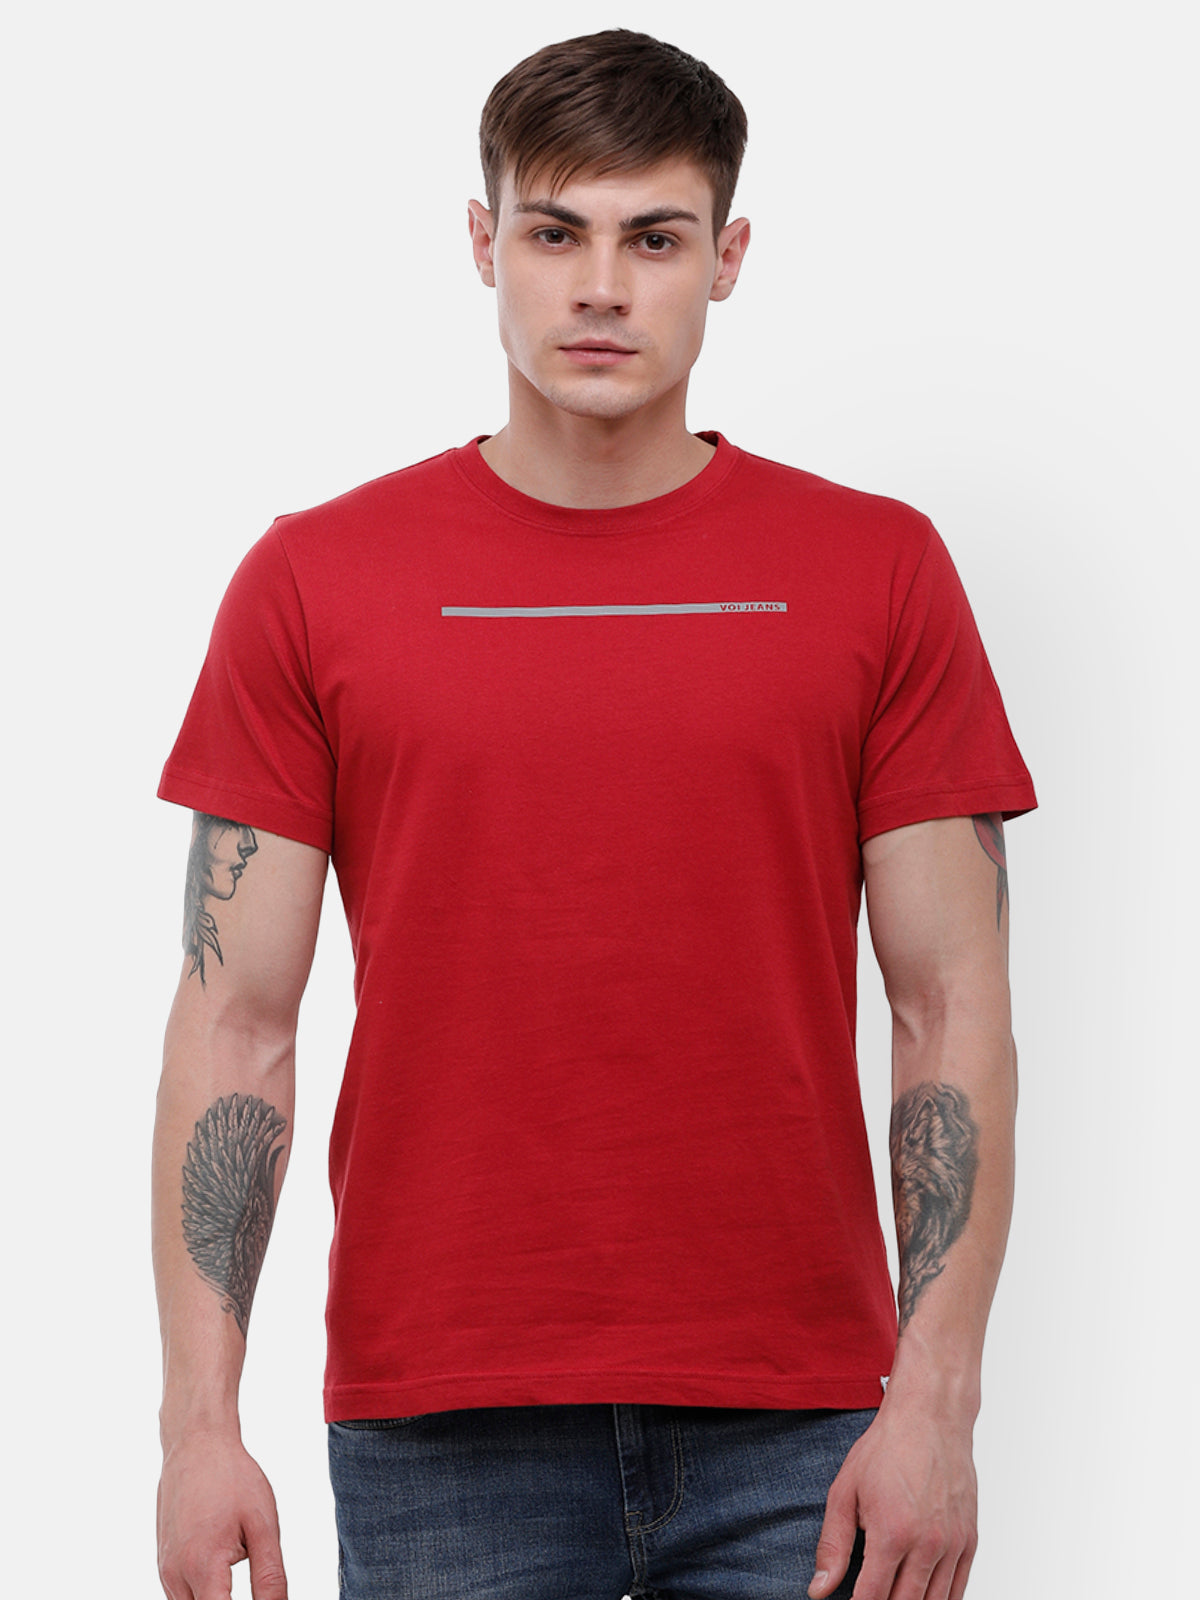 Men's Red half sleeve T-shirt with reflective detail on chest